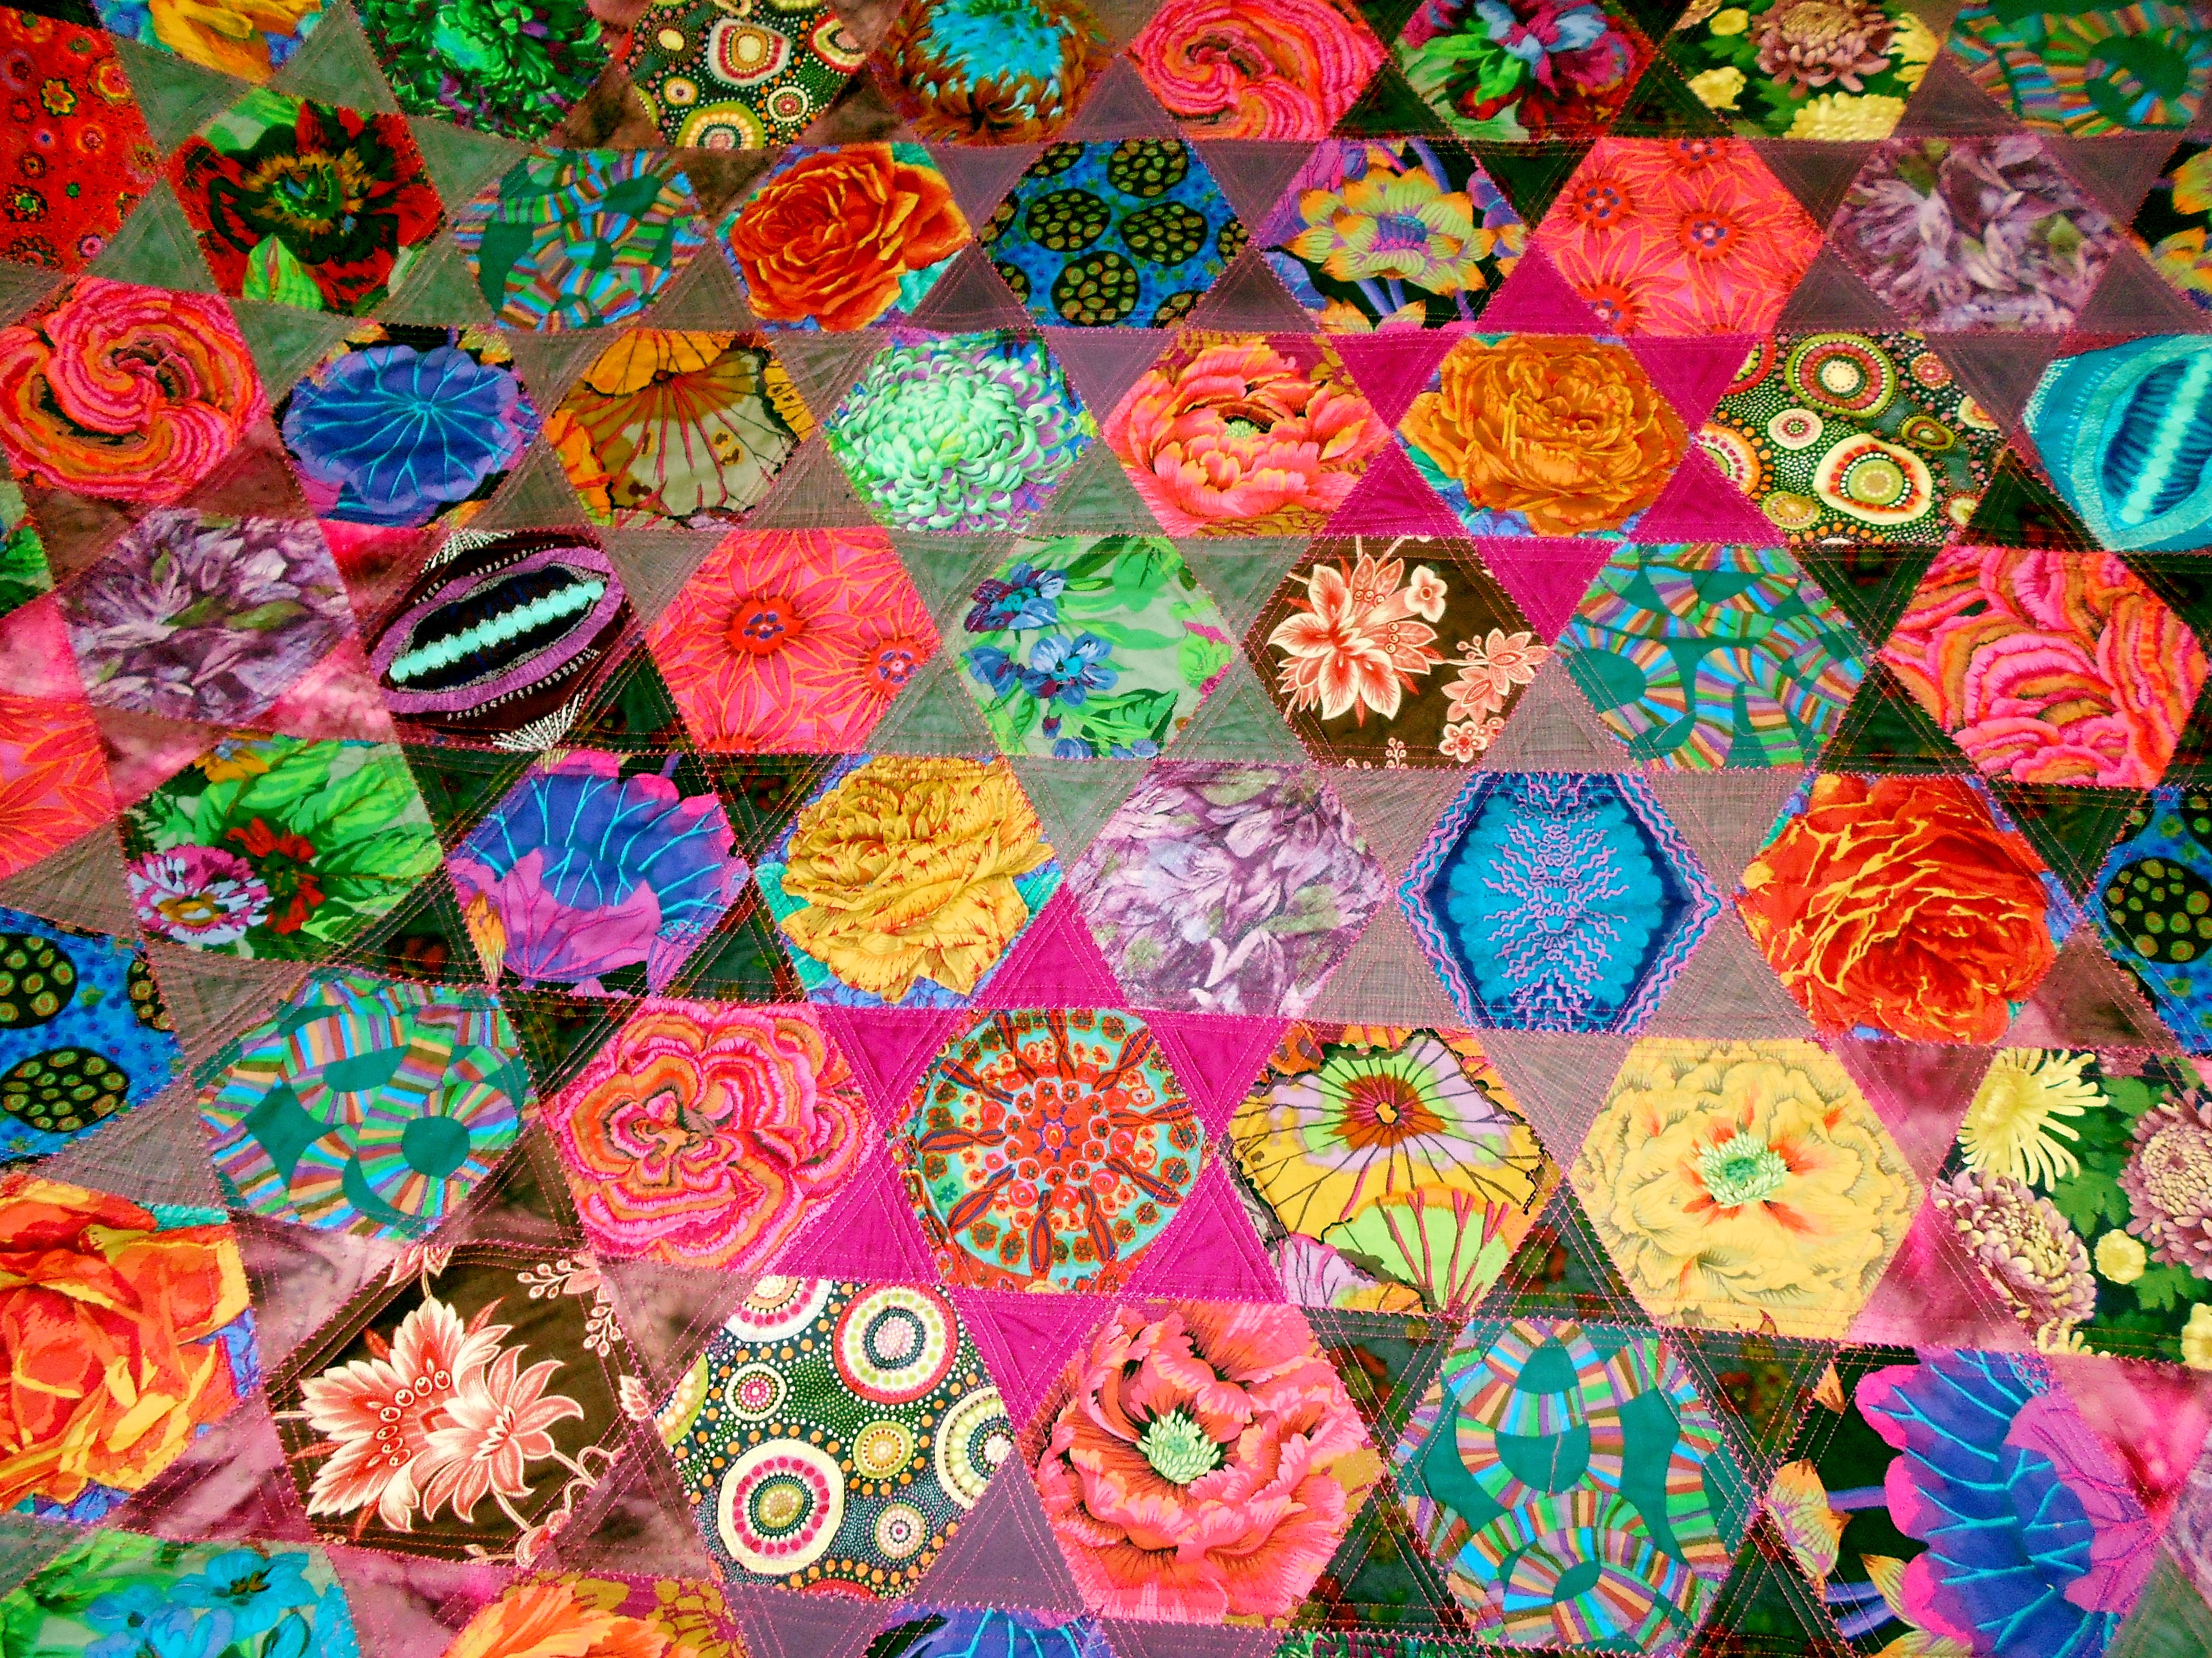 (detail) completed Kaffe Fassett quilt by Gill Roberts